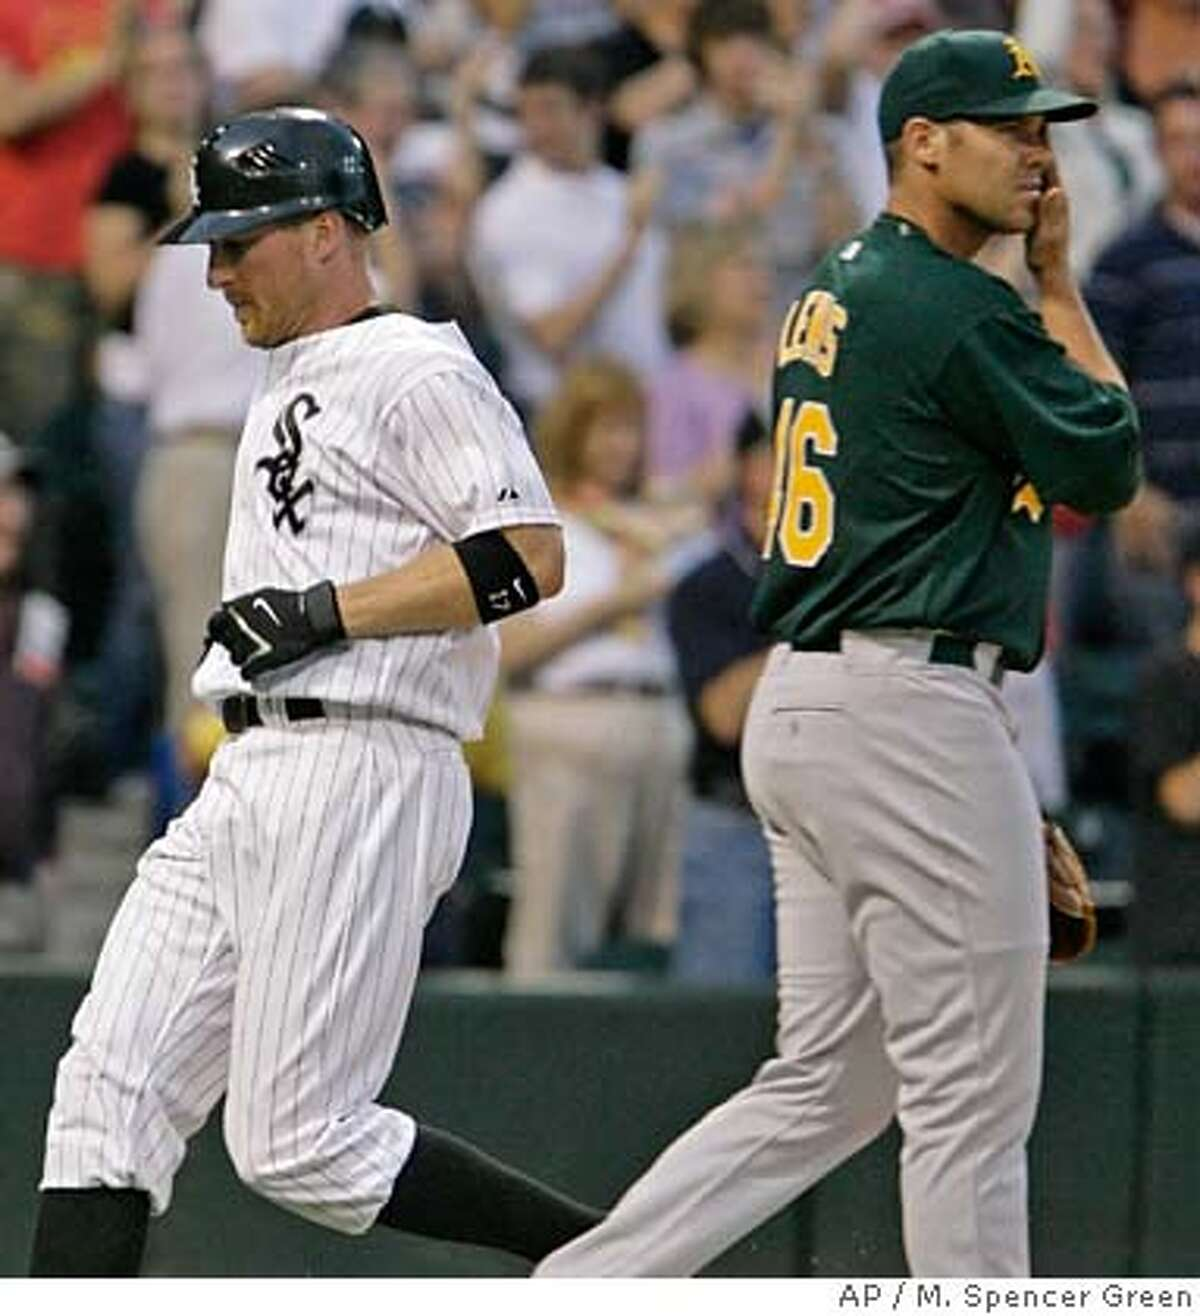 Oakland Athletics pitcher Colby Lewis walks back to the mound as Chicago White Sox' Darrin Erstad scores on a two RBI double by Jim Thome during the second inning of a baseball game Tuesday, May 22, 2007, in Chicago. (AP Photo/M. Spencer Green) EFE OUT